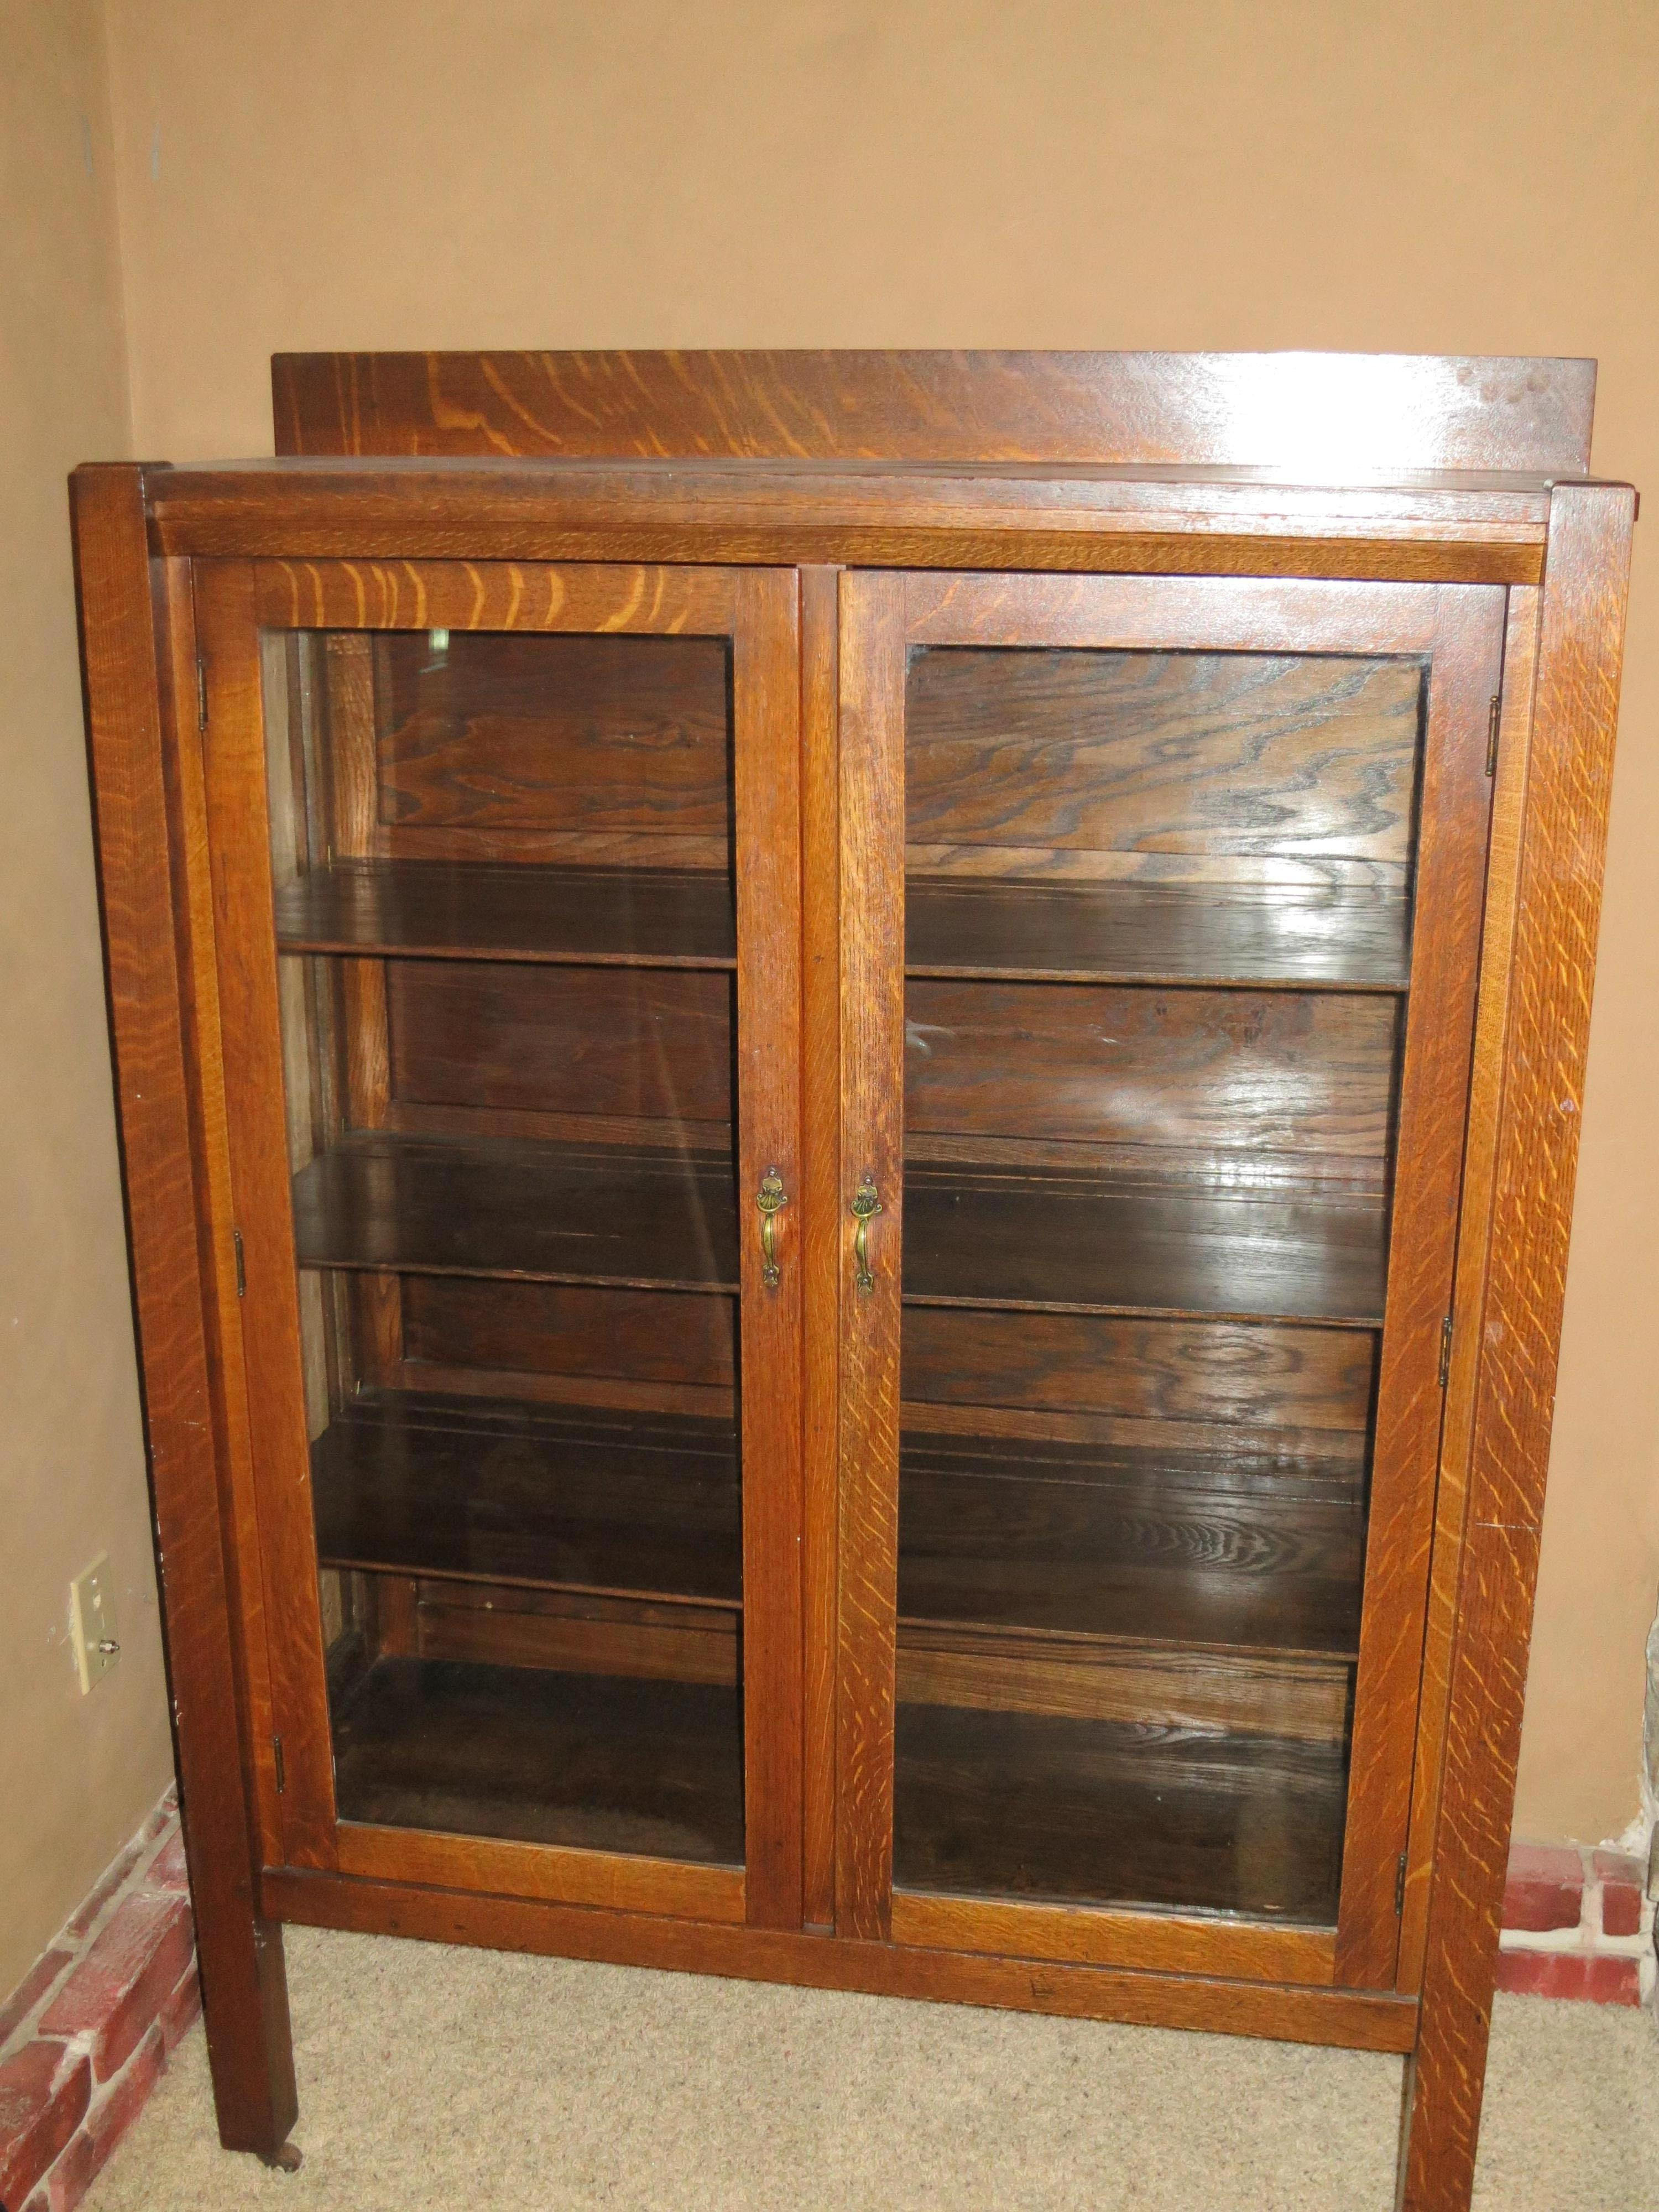 Antique Chinese Furniture Appraisal Luxury Mission Oak China Cabinet Antique Appraisal